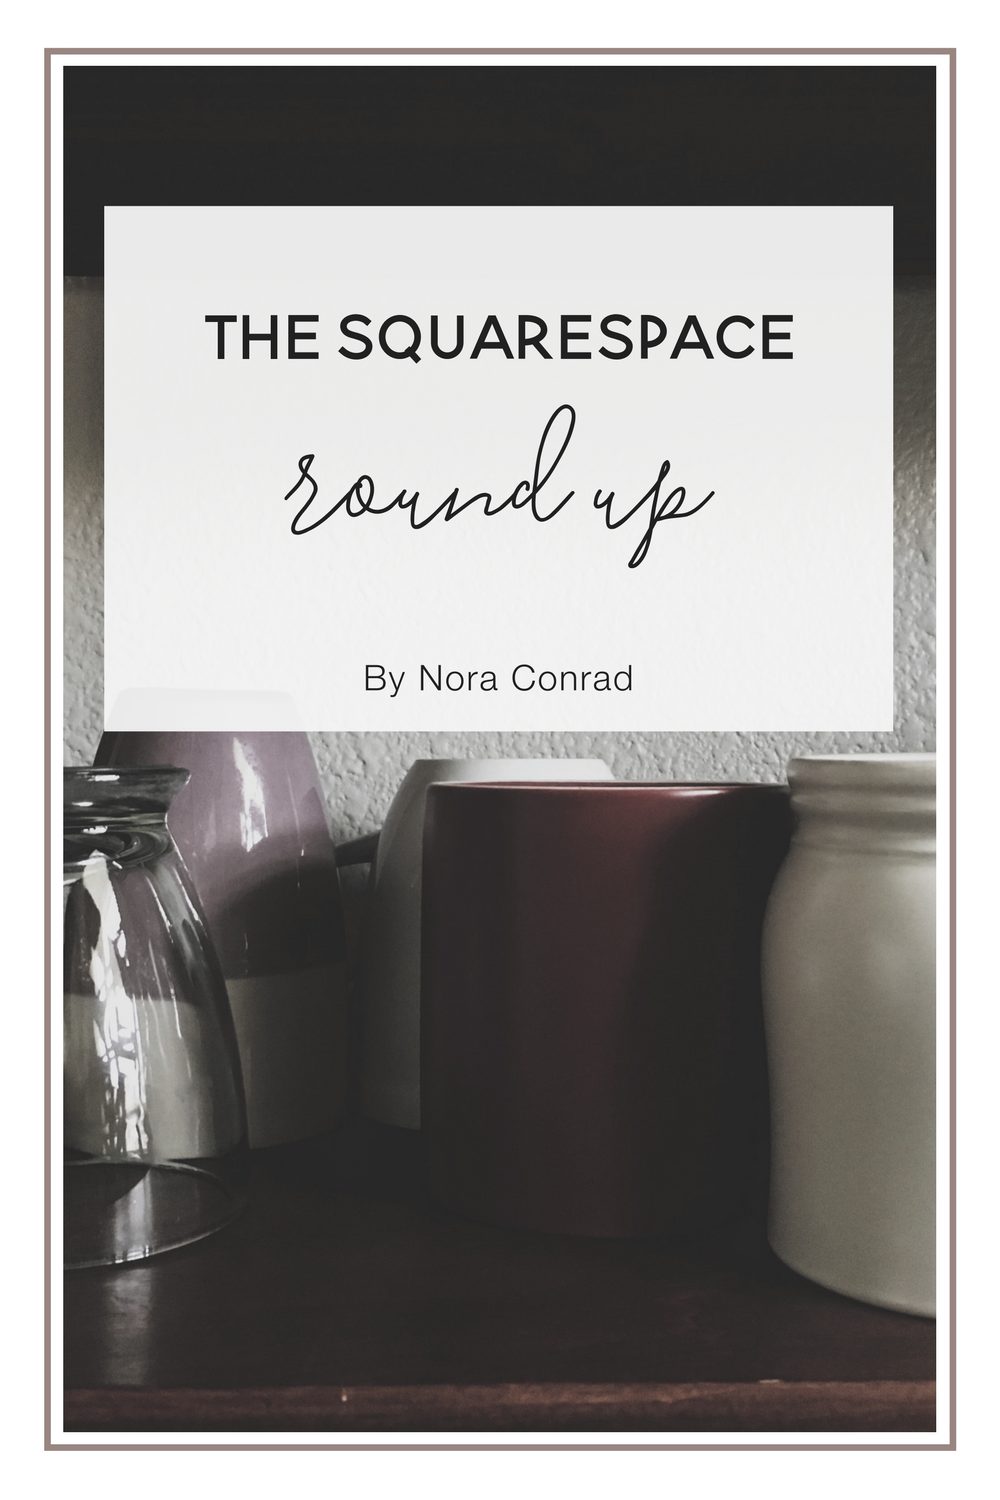 I've seen more and more people hopping on the Squarespace wagon, so hopefully this will be a great resource any time you have a question about it.